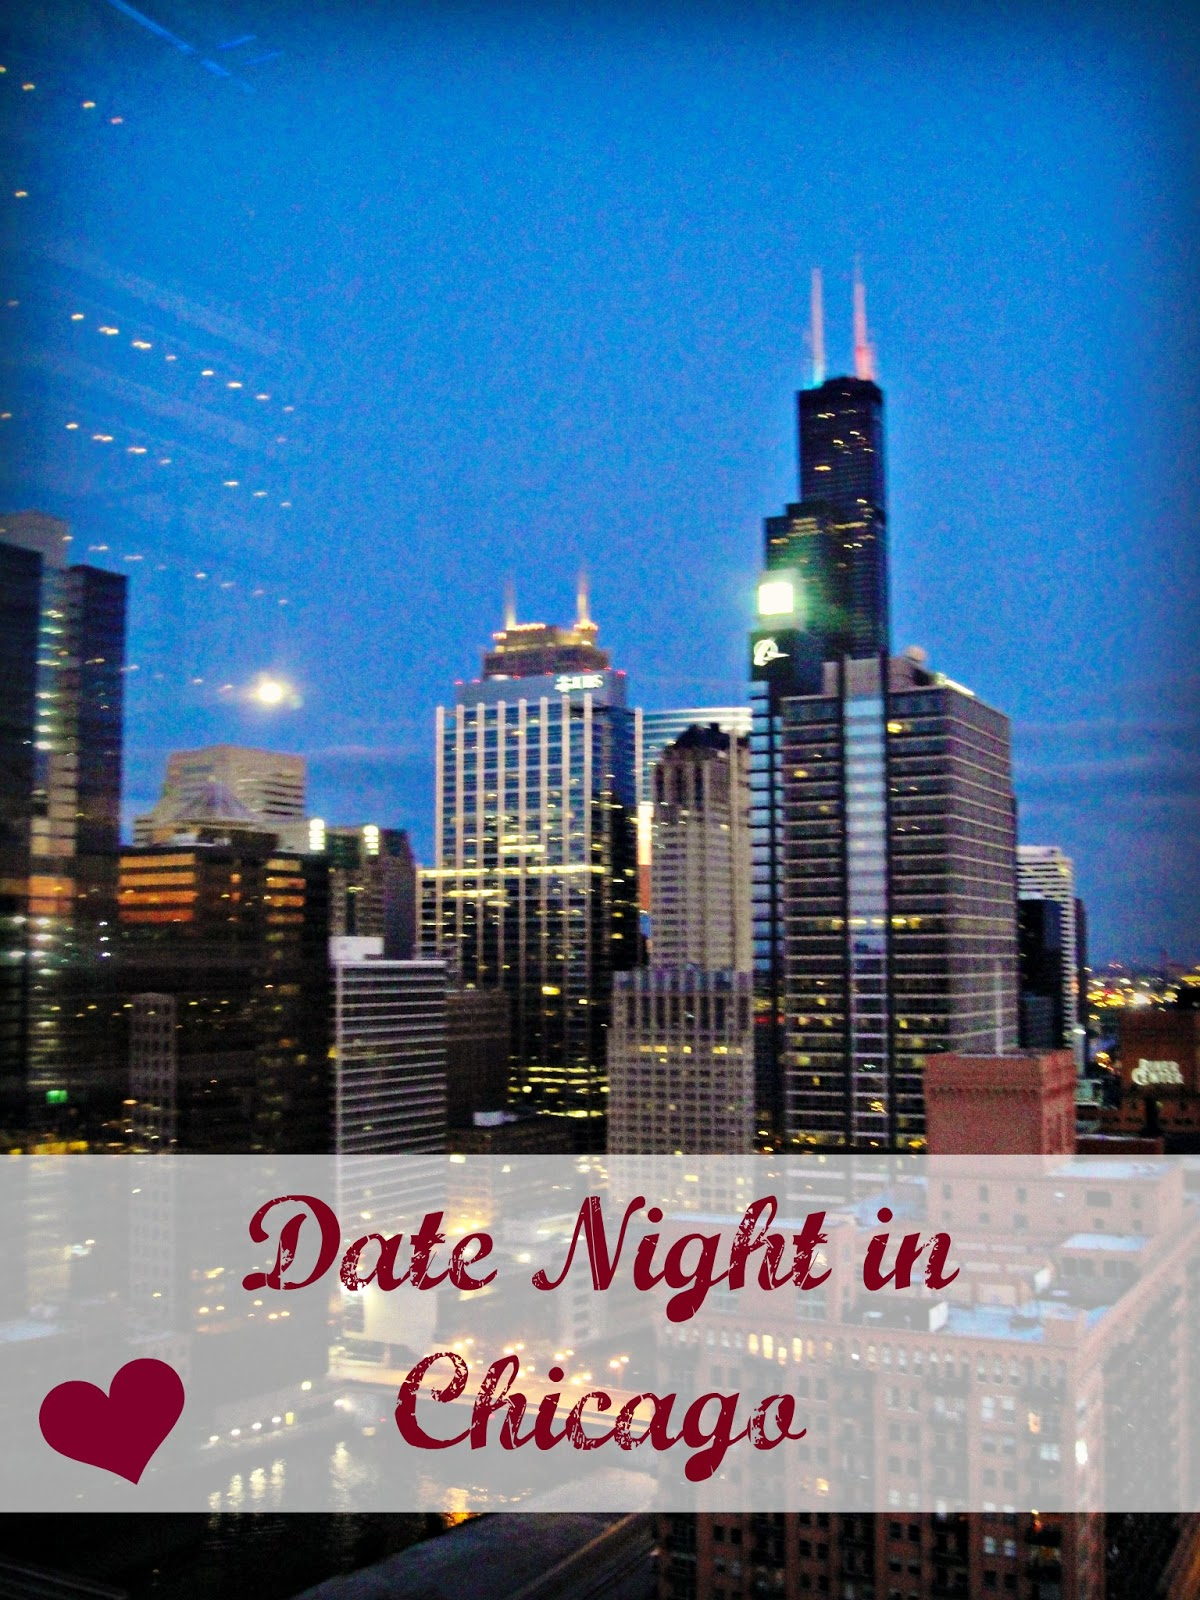 dating places in chicago Where to meet single people in chicago  if you own a business that caters to singles, you are in the right place to reach more of them.